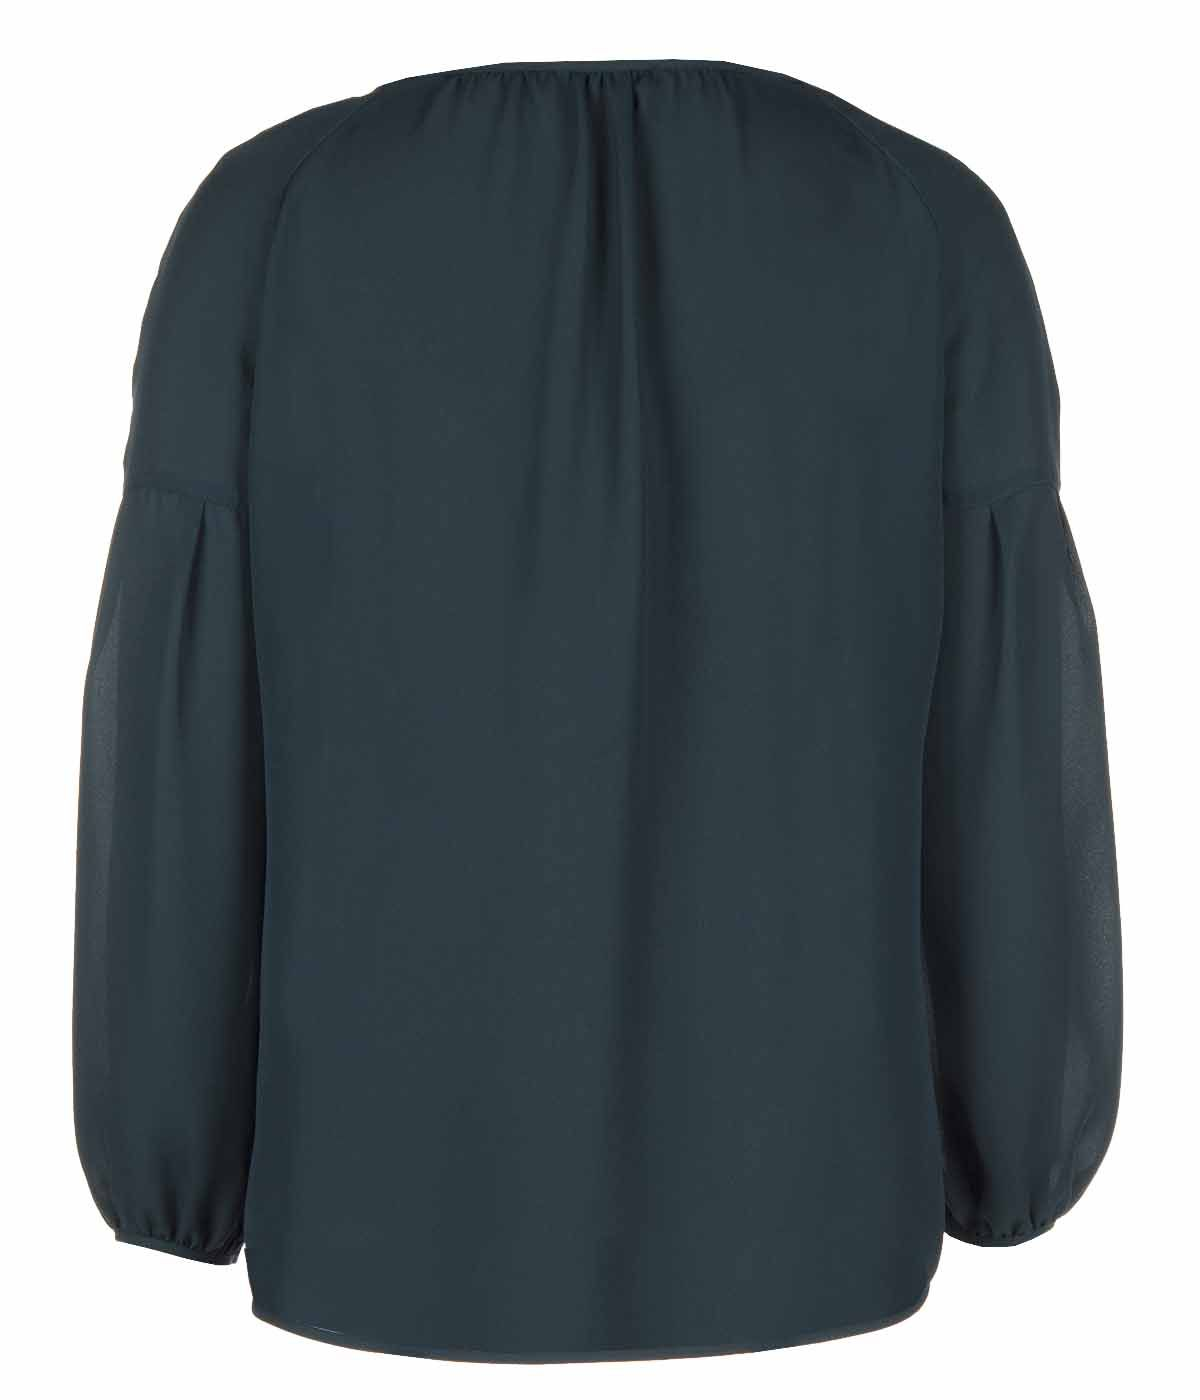 GREEN LONG SLEEVED BLOUSE WITH ROUND NECK 1